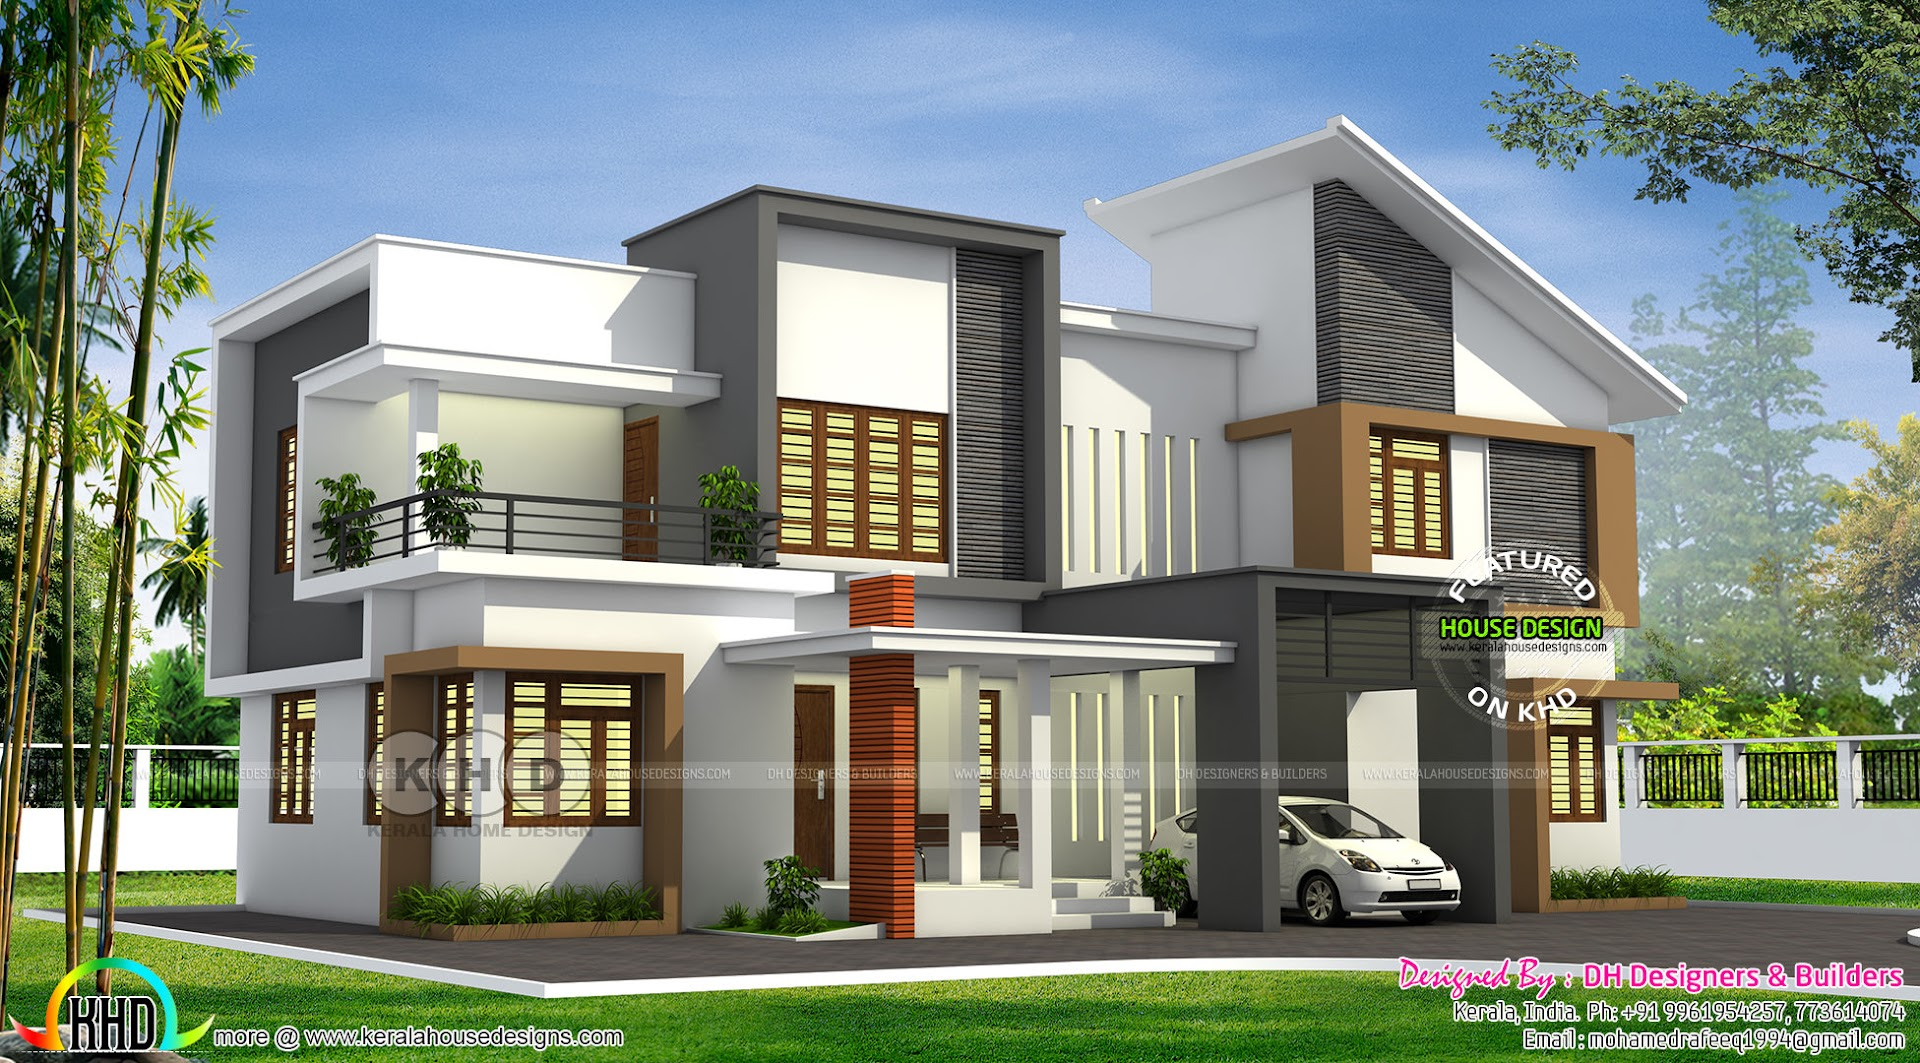 Contemporary home by dh designers and builders kerala for Contemporary house builders